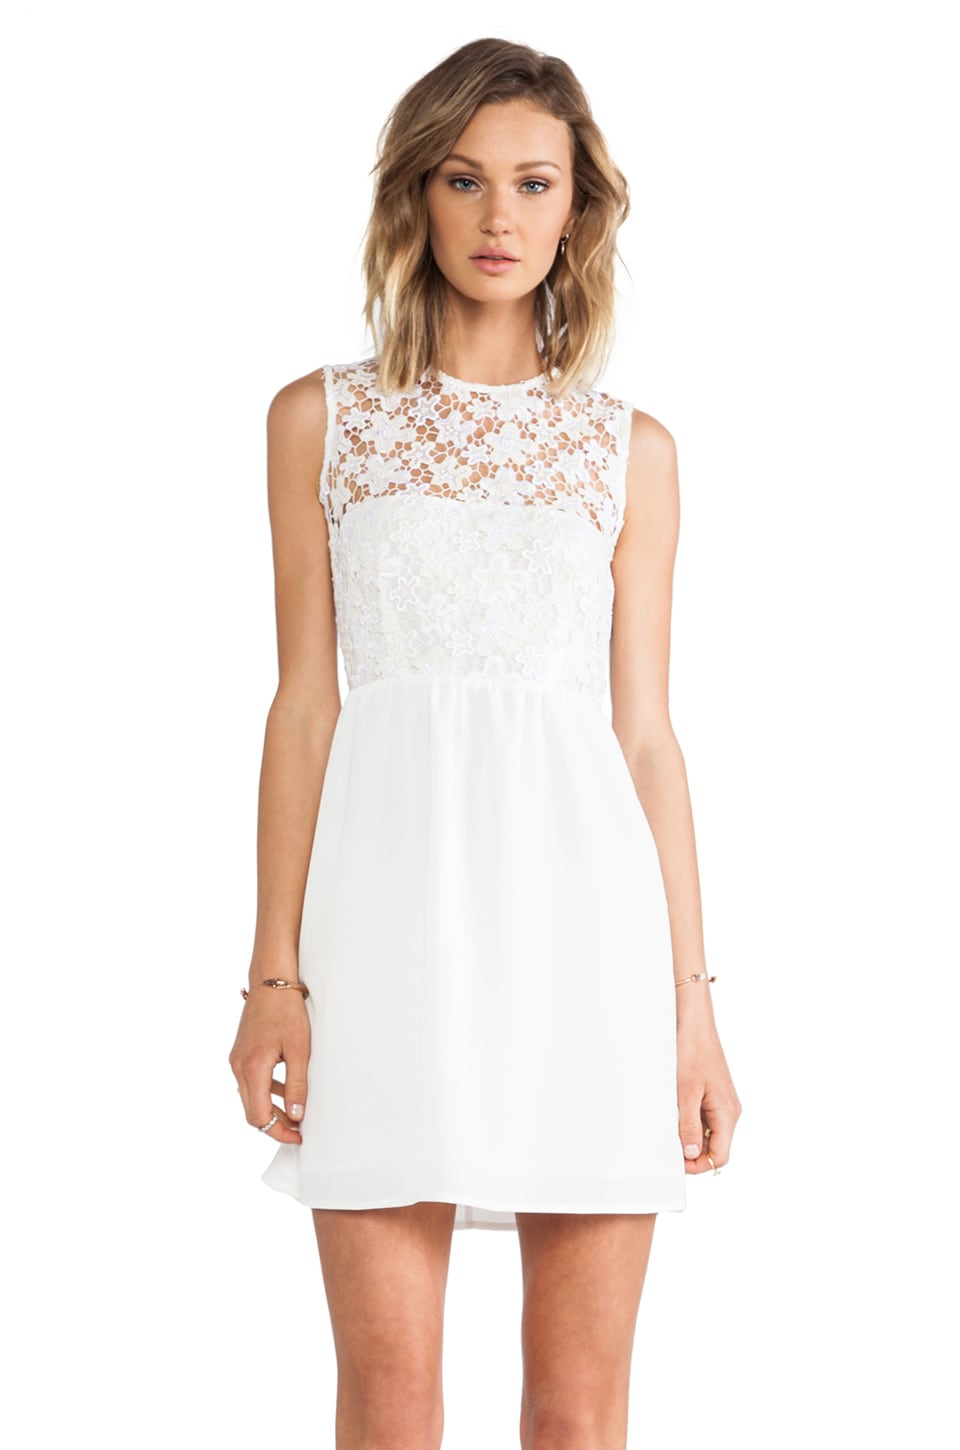 MM Couture by Miss Me Lace Top Dress in White